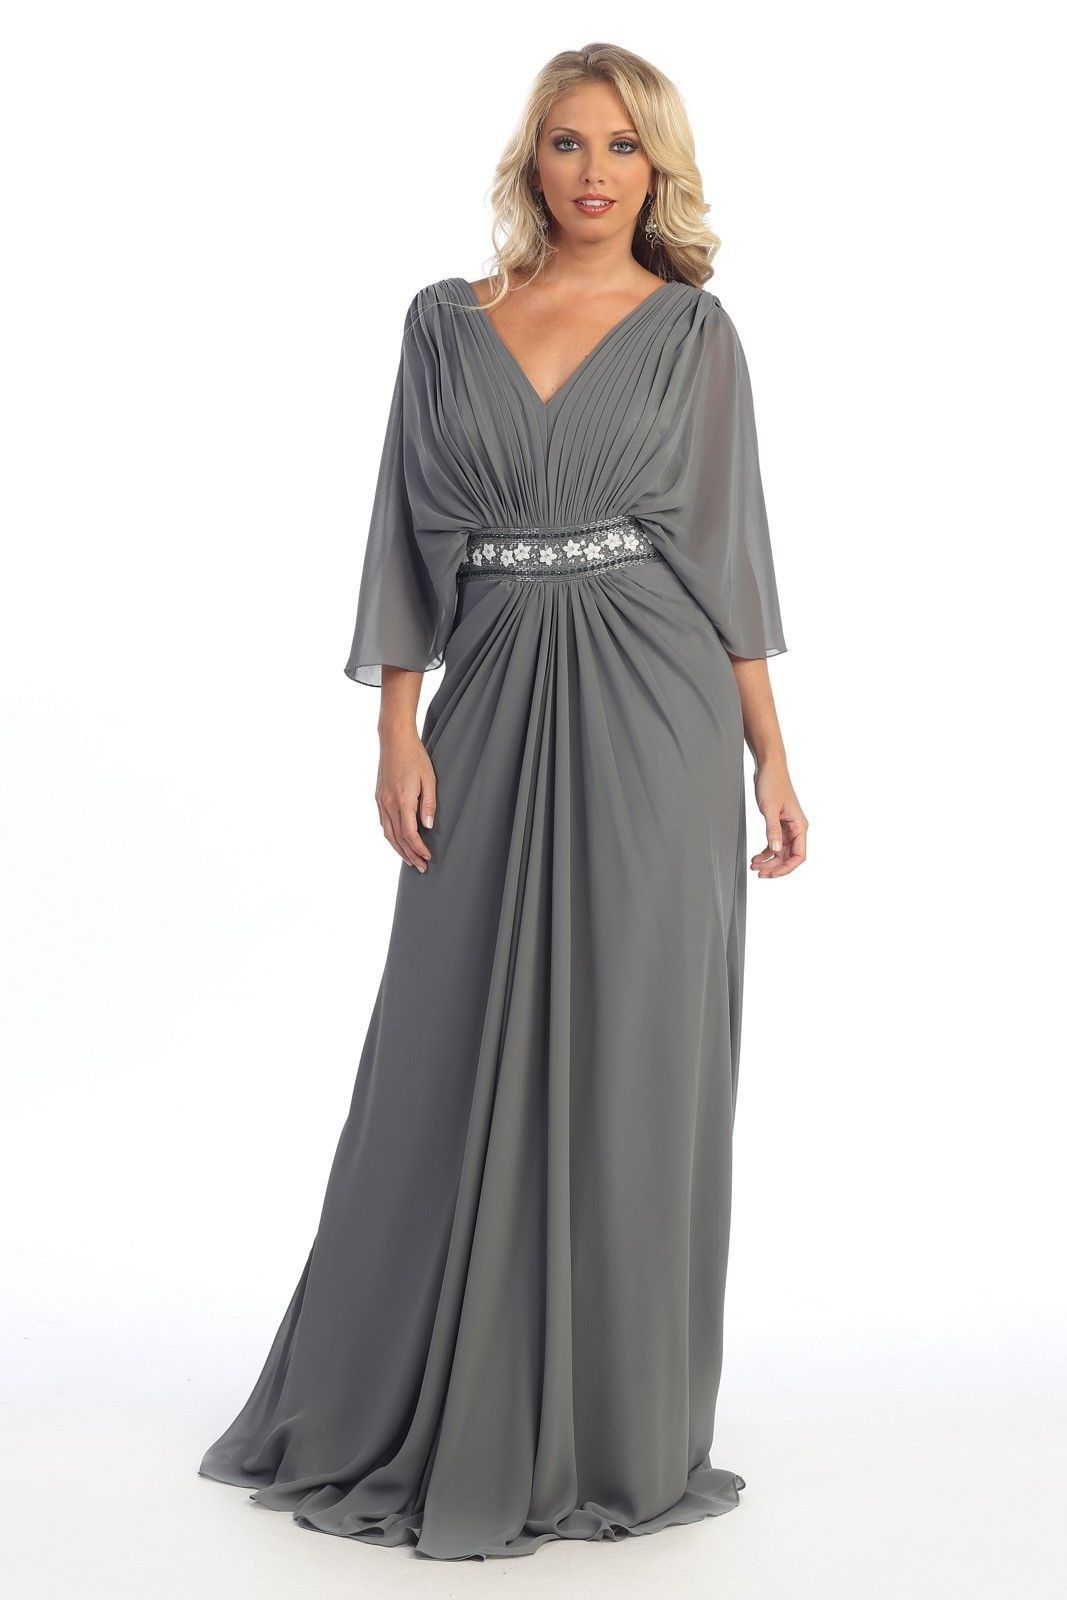 20 best plus size prom dresses to choose | gray dress, formal and gray